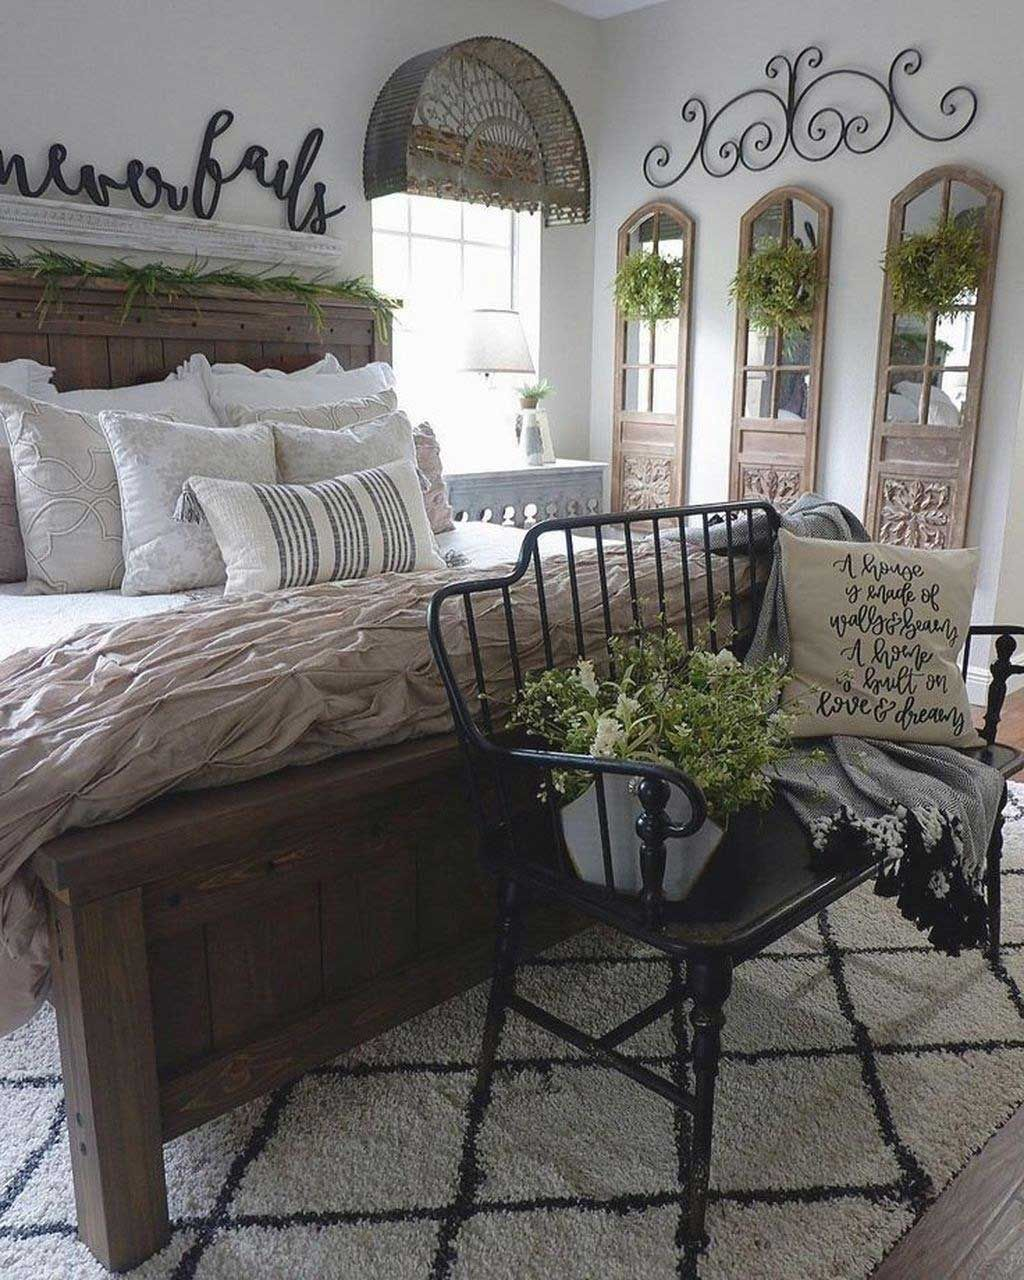 Impressive Farmhouse Bedroom Decor Ideas Best Home Design Ideas Master Bedroom Remodel Stylish Master Bedrooms Farmhouse Bedroom Decor